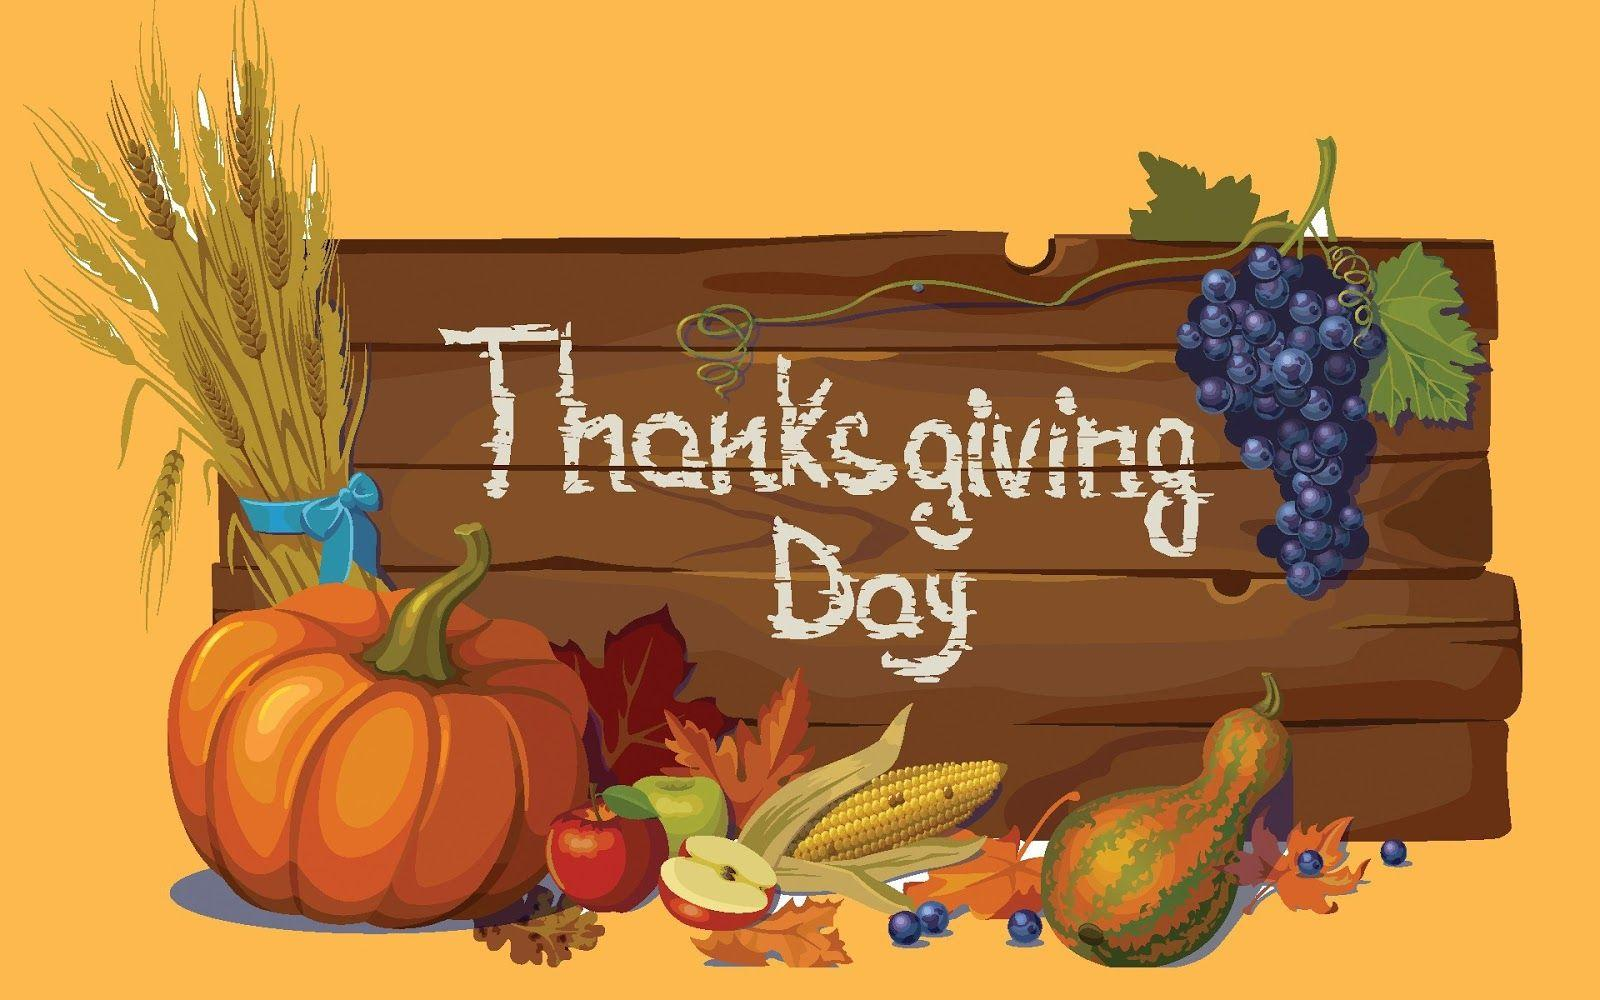 Happy Thanksgiving 2018 Quotes, Images, Pictures, Wishes & Messages